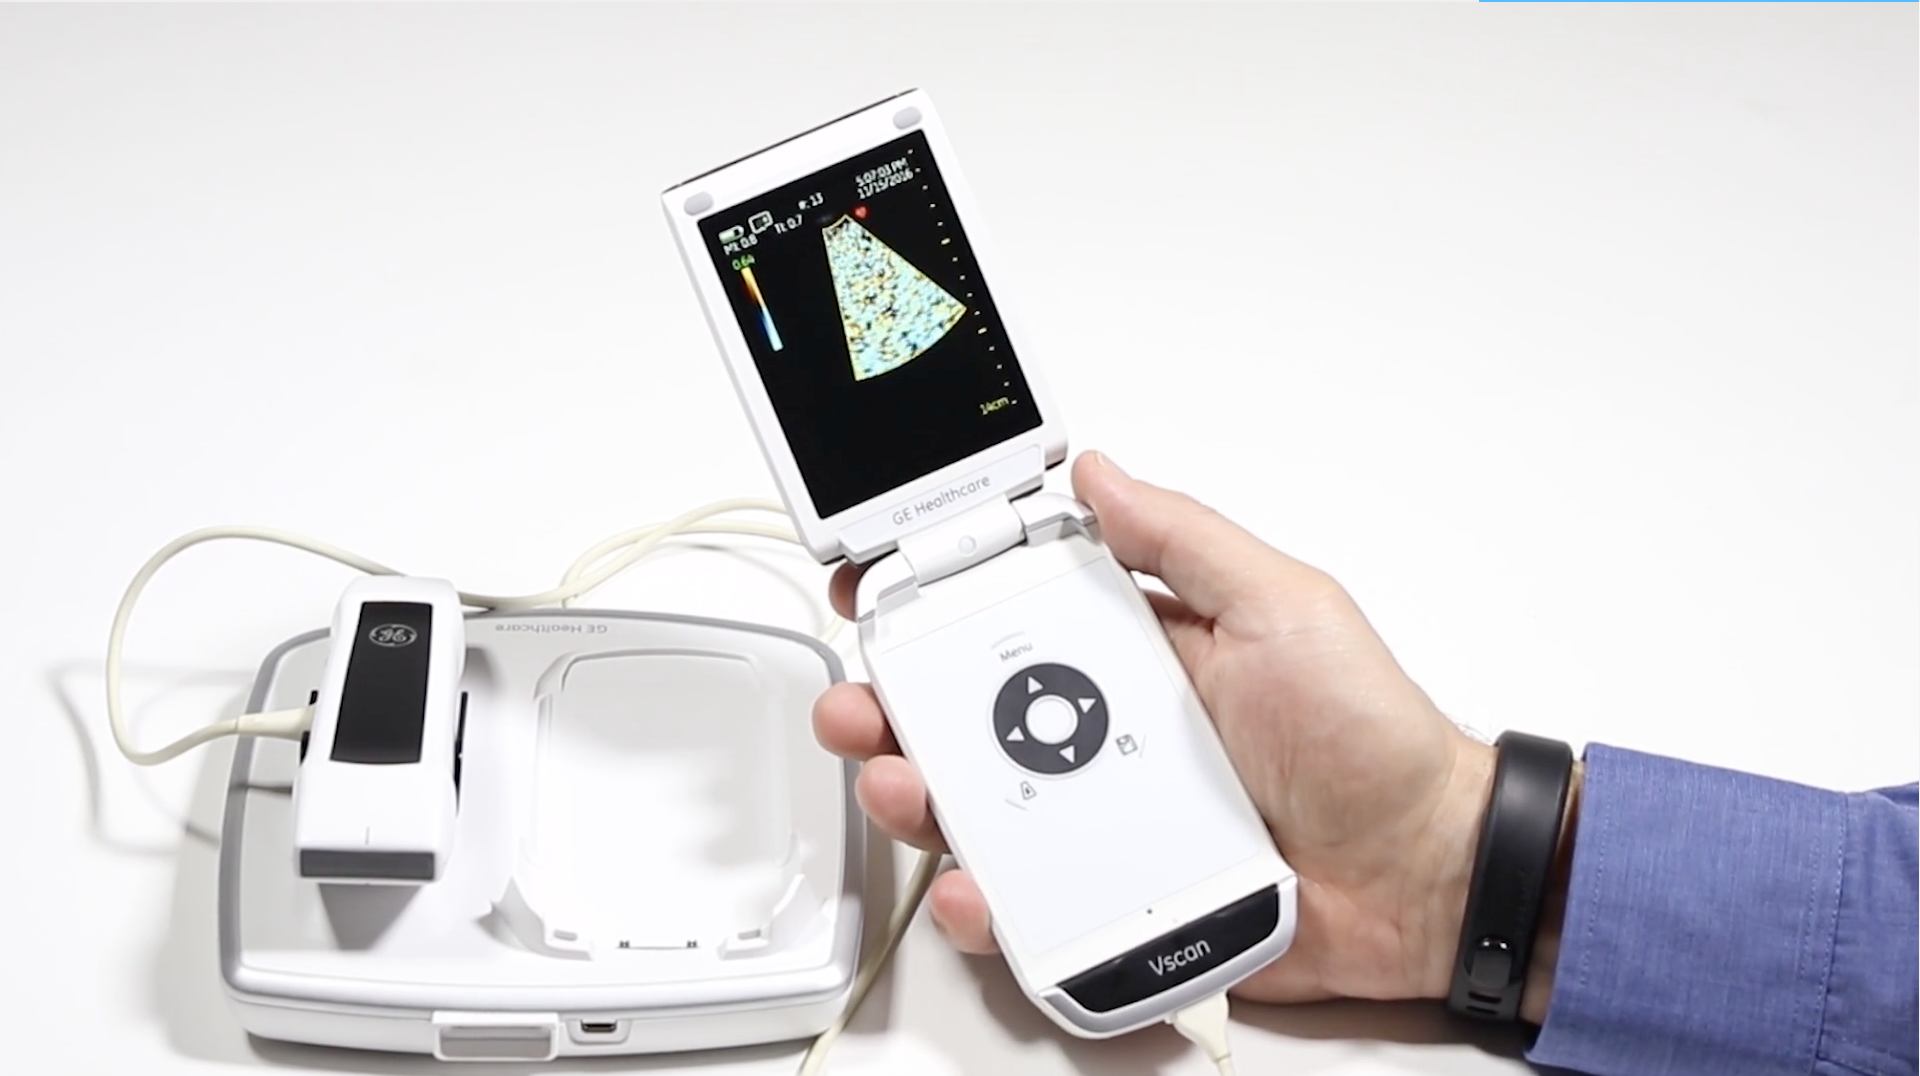 Learn how to scan and use the GE VSCan Dual Probe Ultrasound Machine